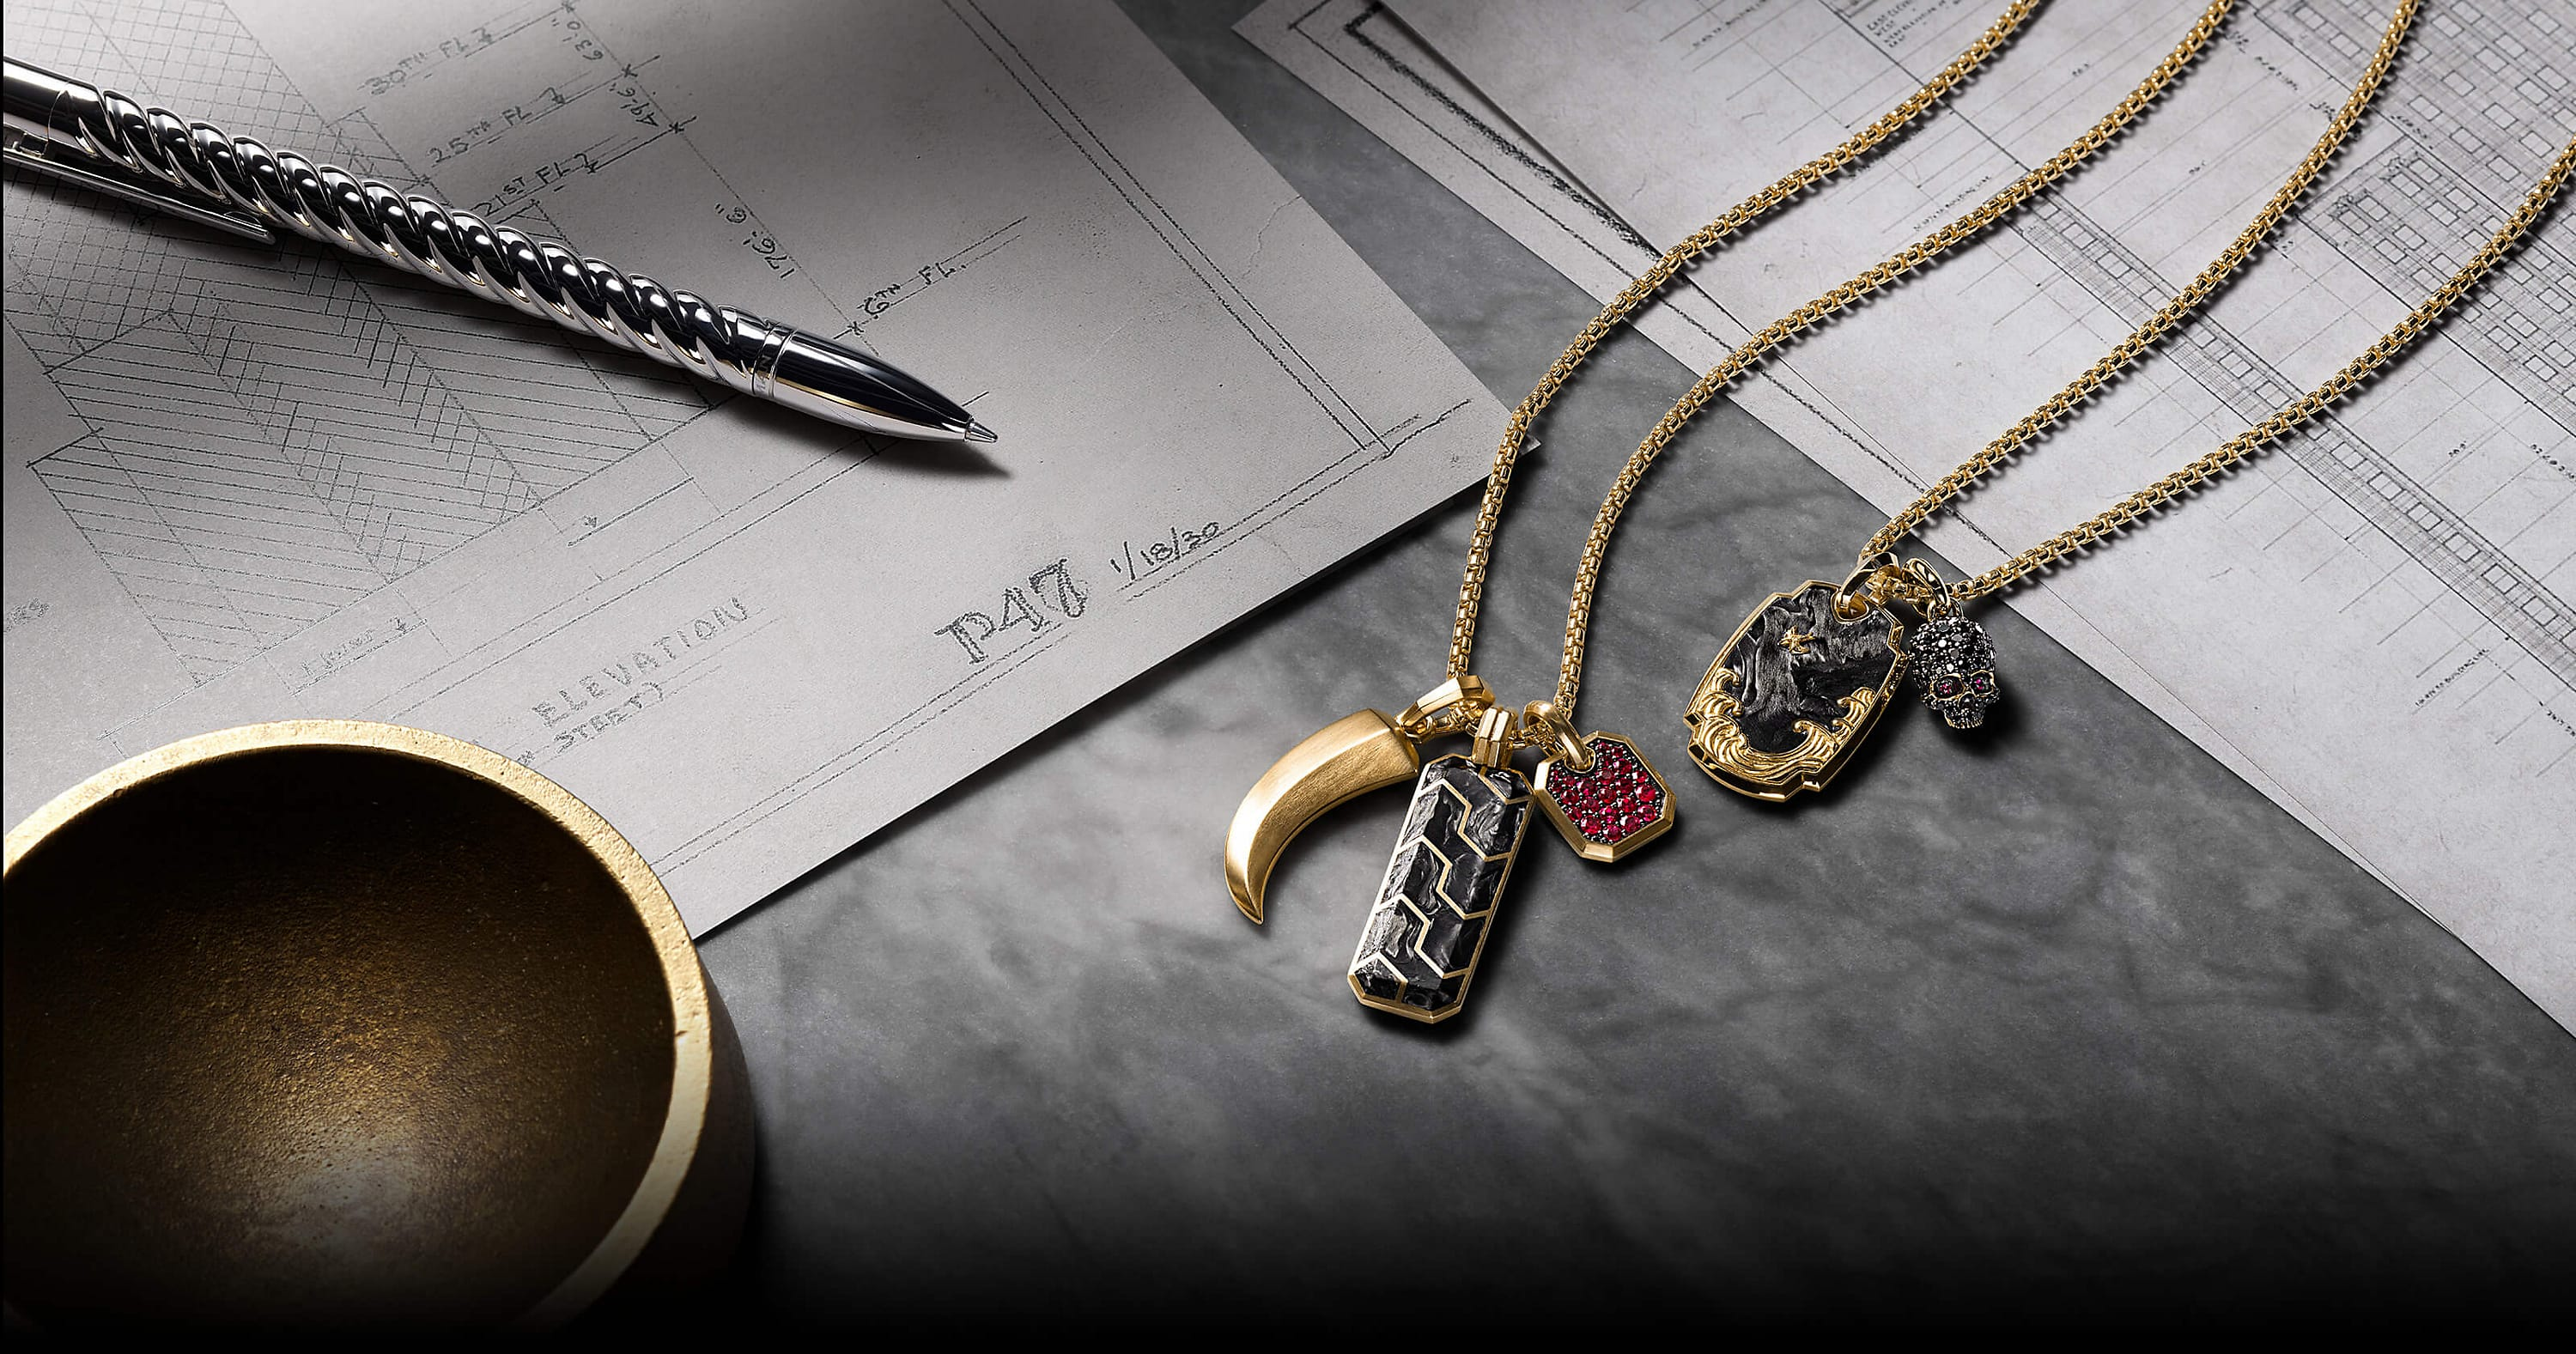 A color photo shows two David Yurman men's chains strung with three or two amulet pendants each. The jewelry is crafted from 18K yellow gold with or without forged carbon, rubies or black diamonds. The amulets come in various shapes such as a dog tag, horn, octagon or skull. The jewelry is placed on a grey marble surface with architectural blueprints, a sterling silver David Yurman Cable pen and a golden dish.